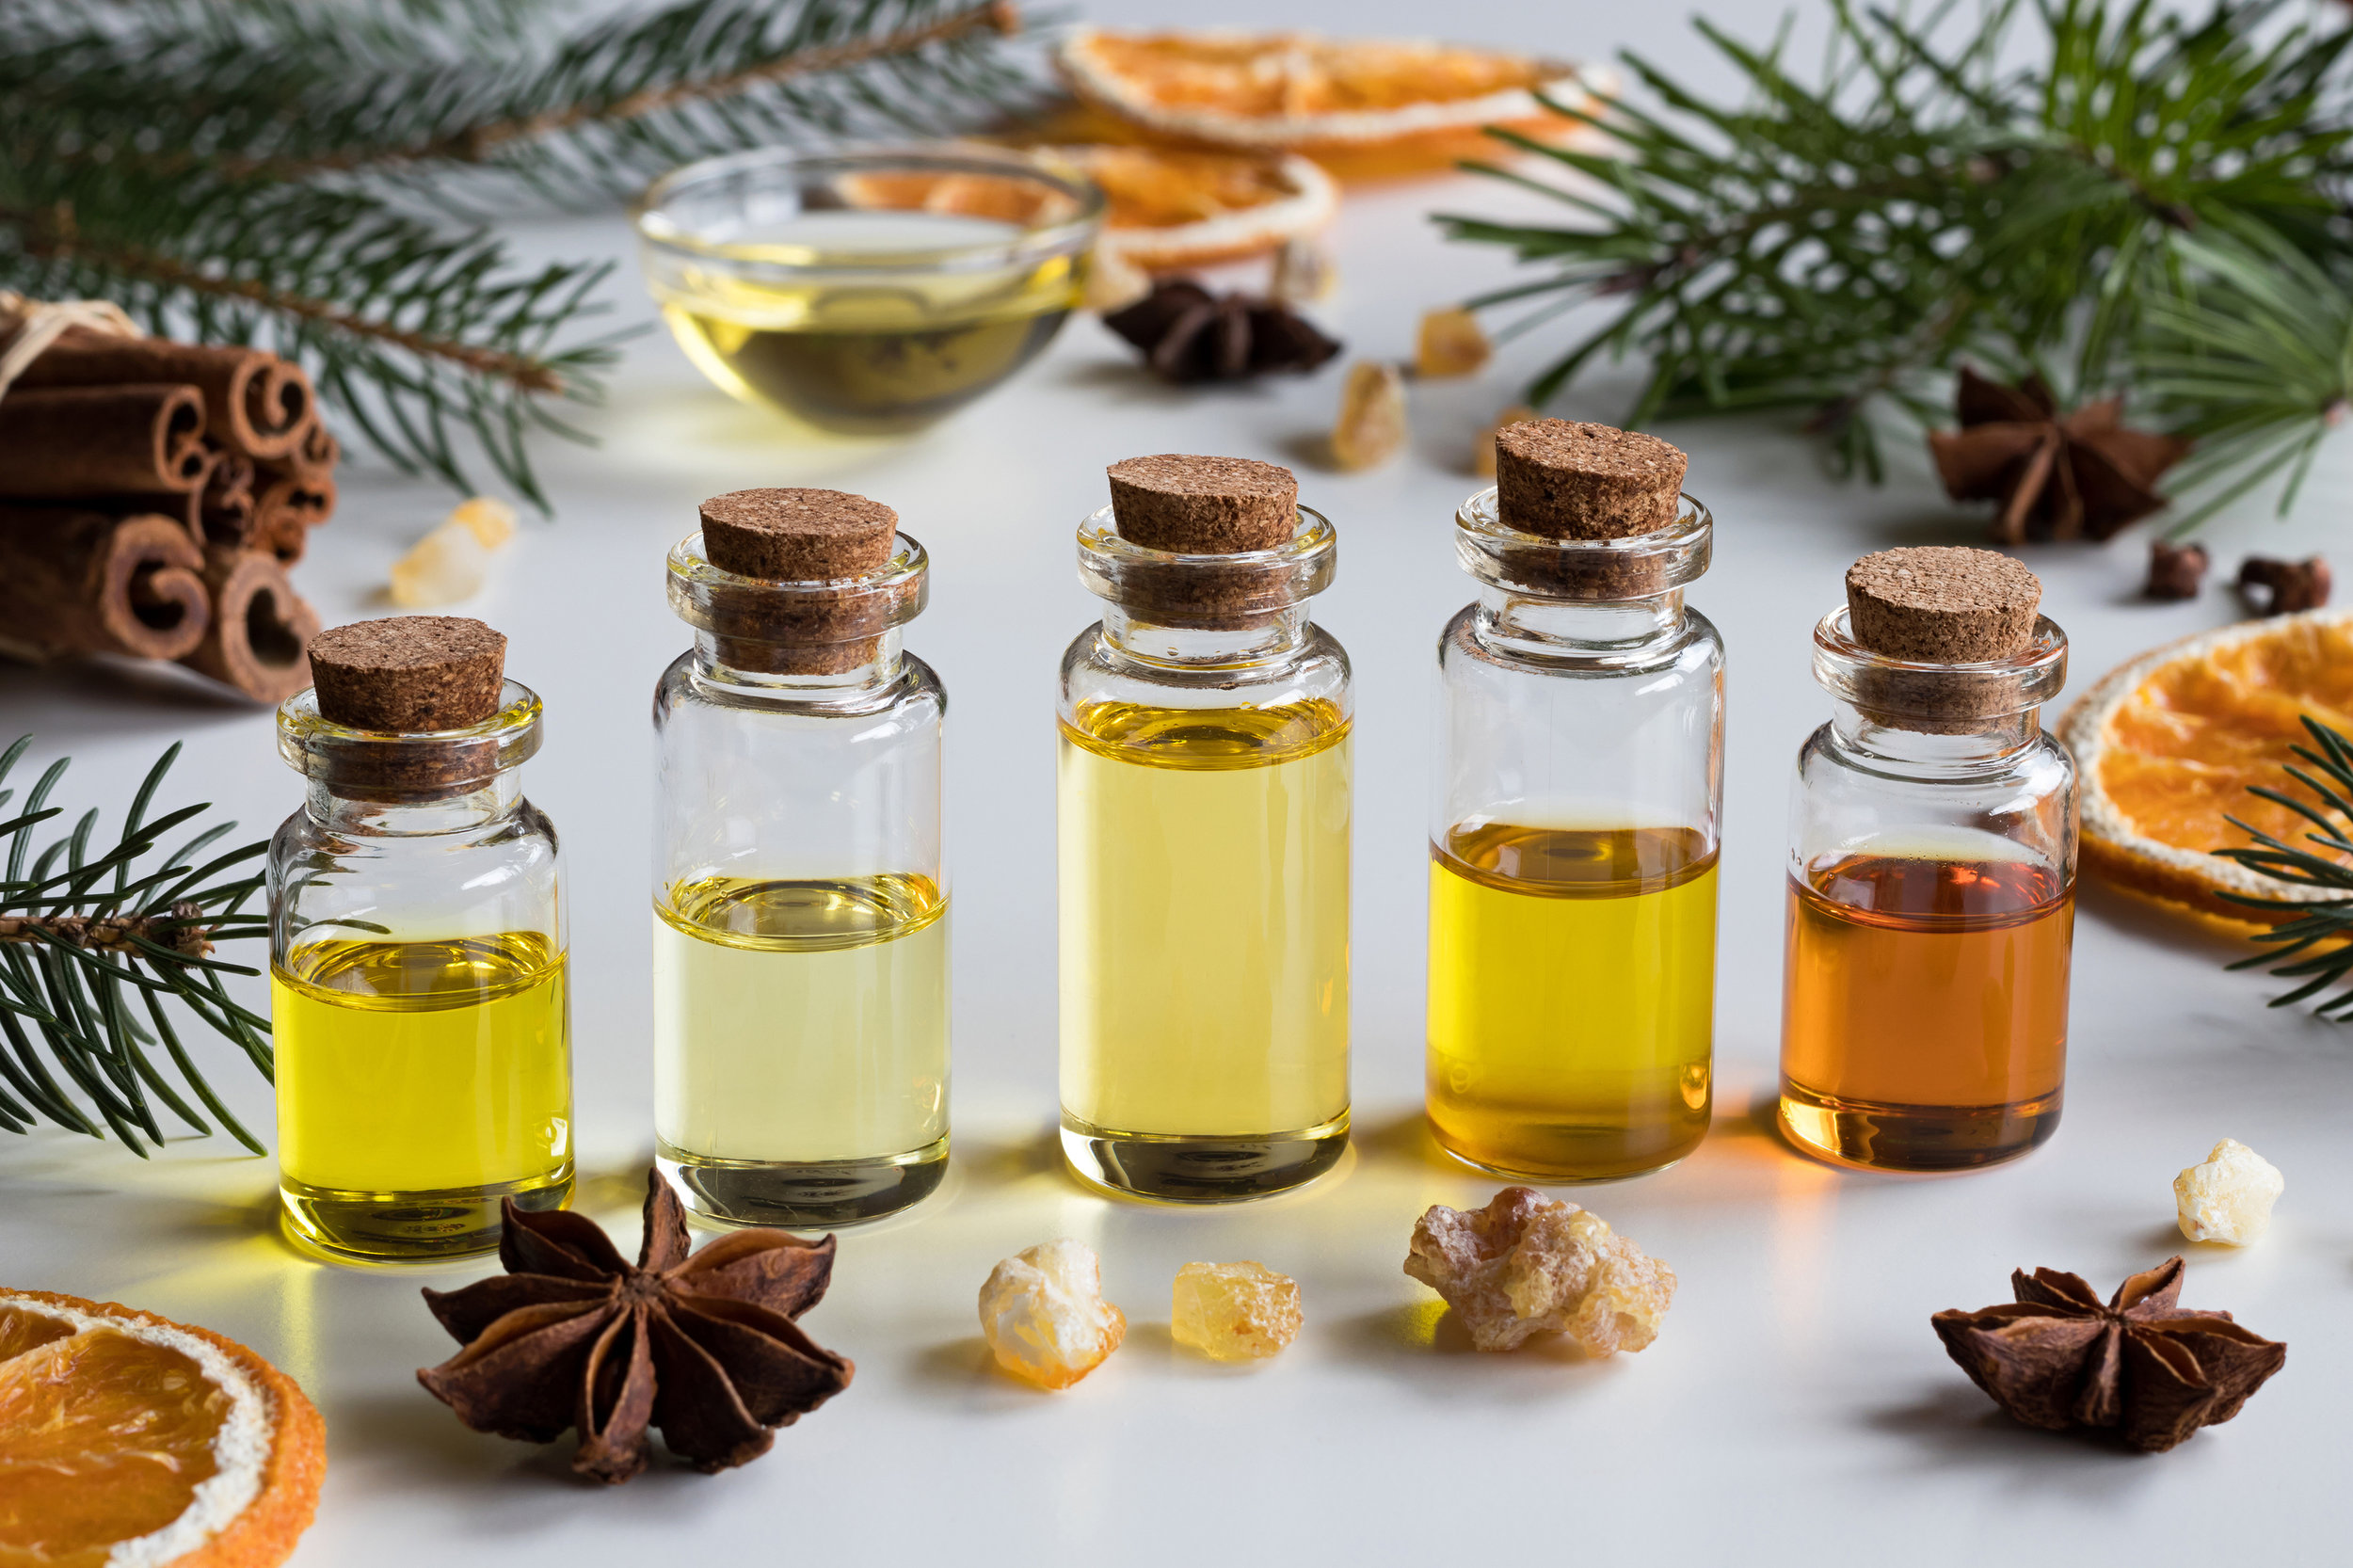 invigorate your senses - Learn the benefits of essential oils. Take part in this hands-on workshop where you create your own oil blends to target each individual's ailments.